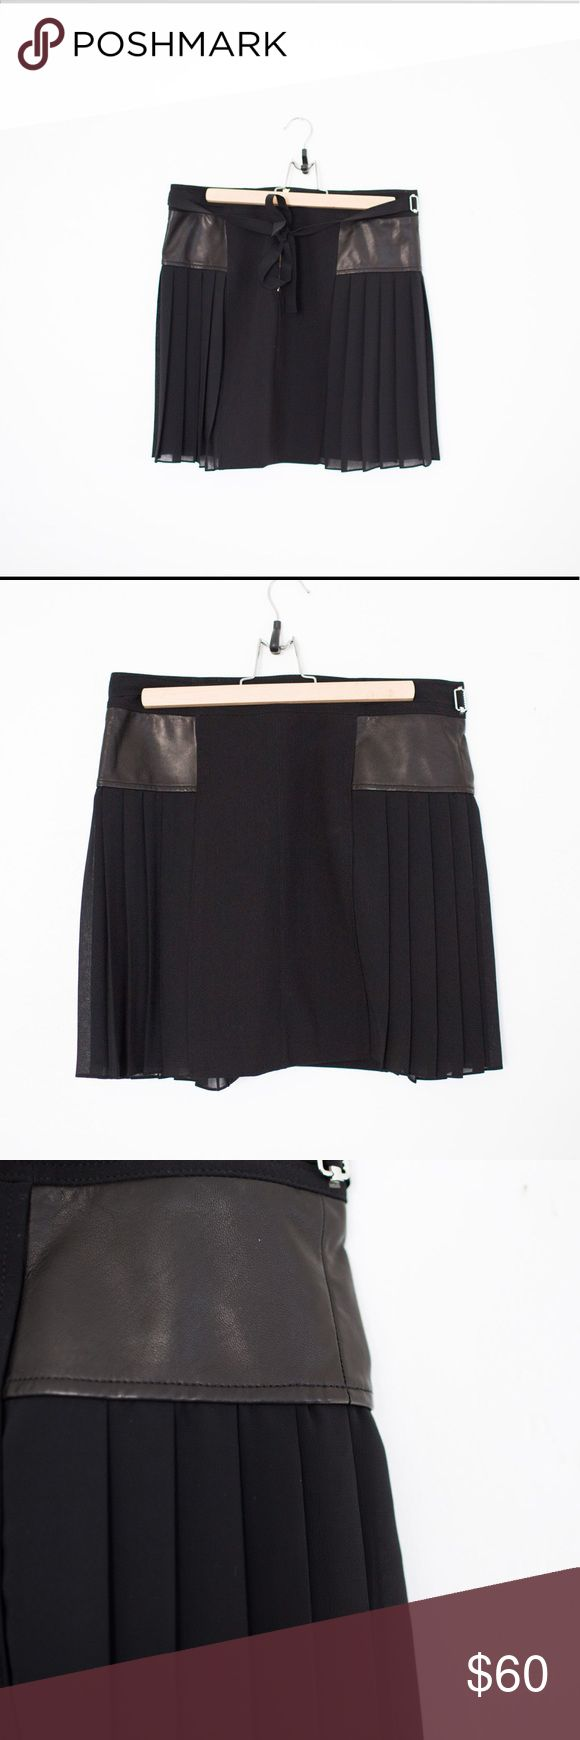 Black Rebecca Taylor leather panel pleated skirt Black Rebecca Taylor skirt with leather side panels and pleats. Back features a gold zipper. ties in the back. Size 8 *first two photos are stock photos and may not be the same size skirt Rebecca Taylor Skirts Mini